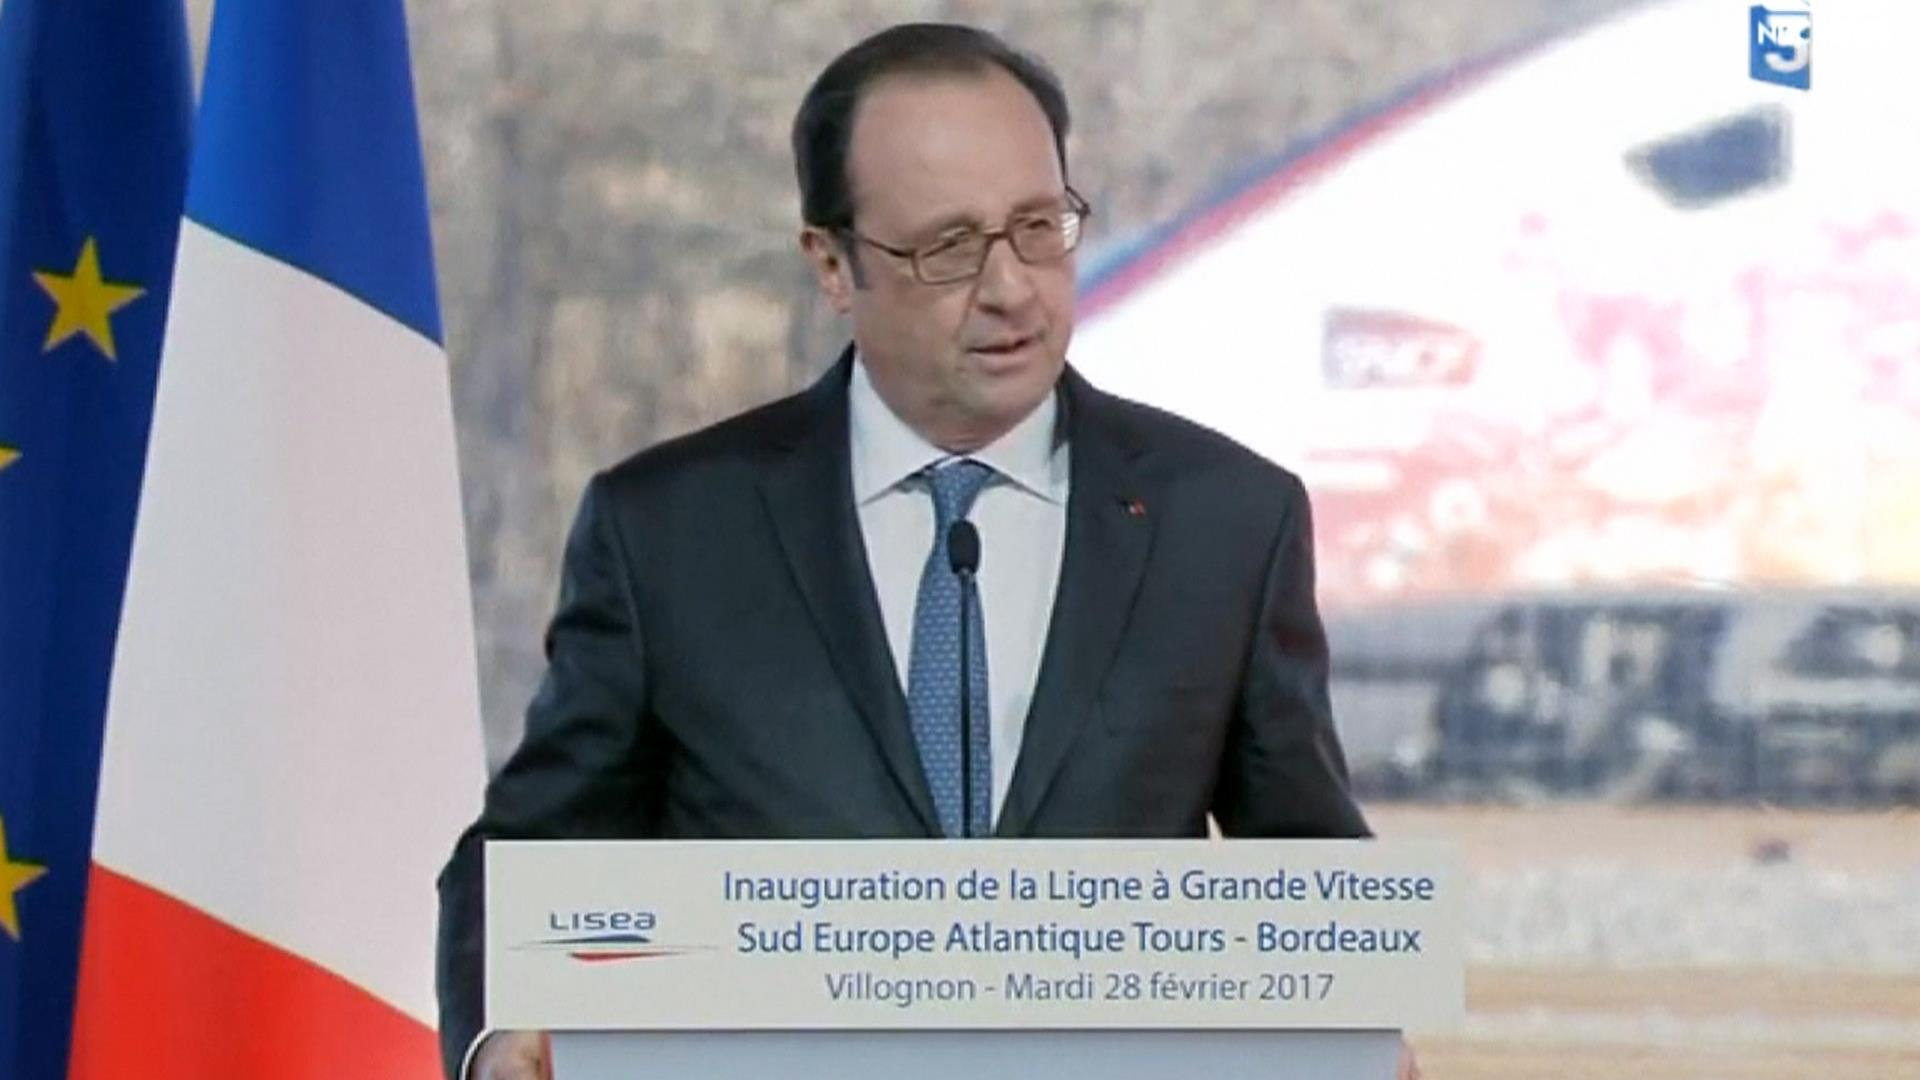 news world politics diplomacy injured police accidentally fires hollande speech